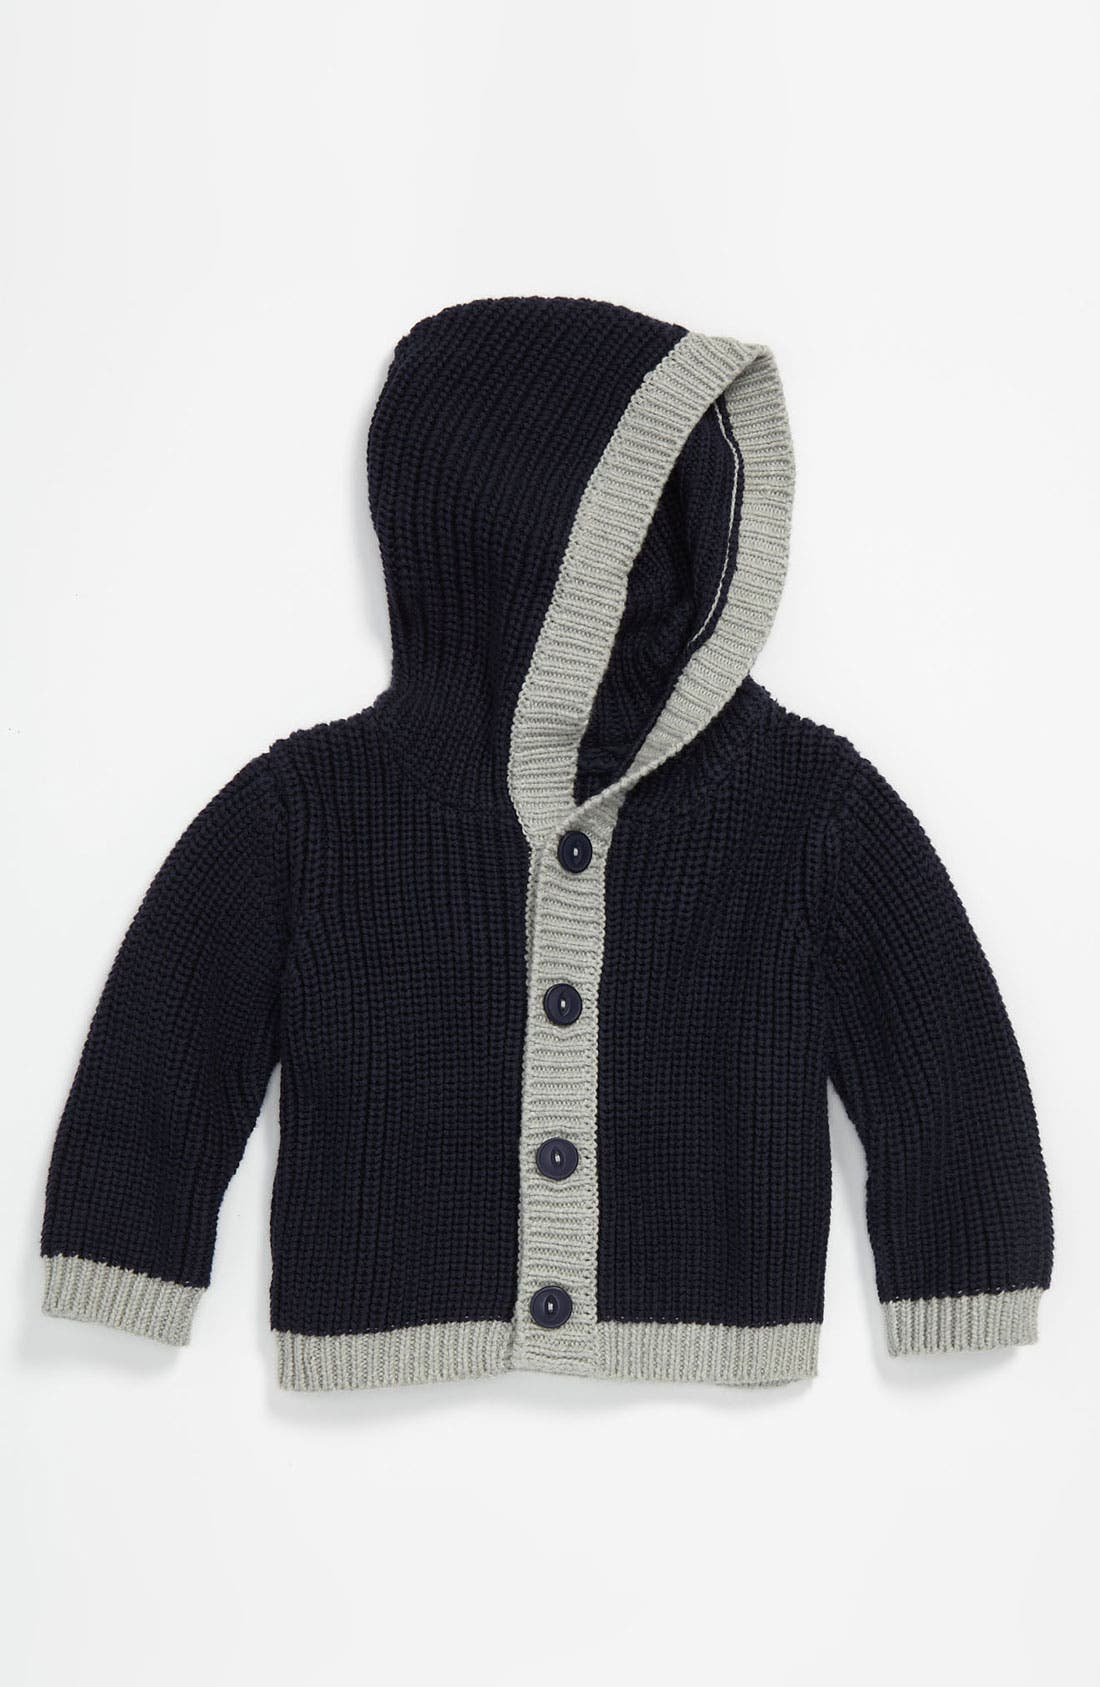 Alternate Image 1 Selected - Nordstrom Baby Shaker Sweater (Infant)